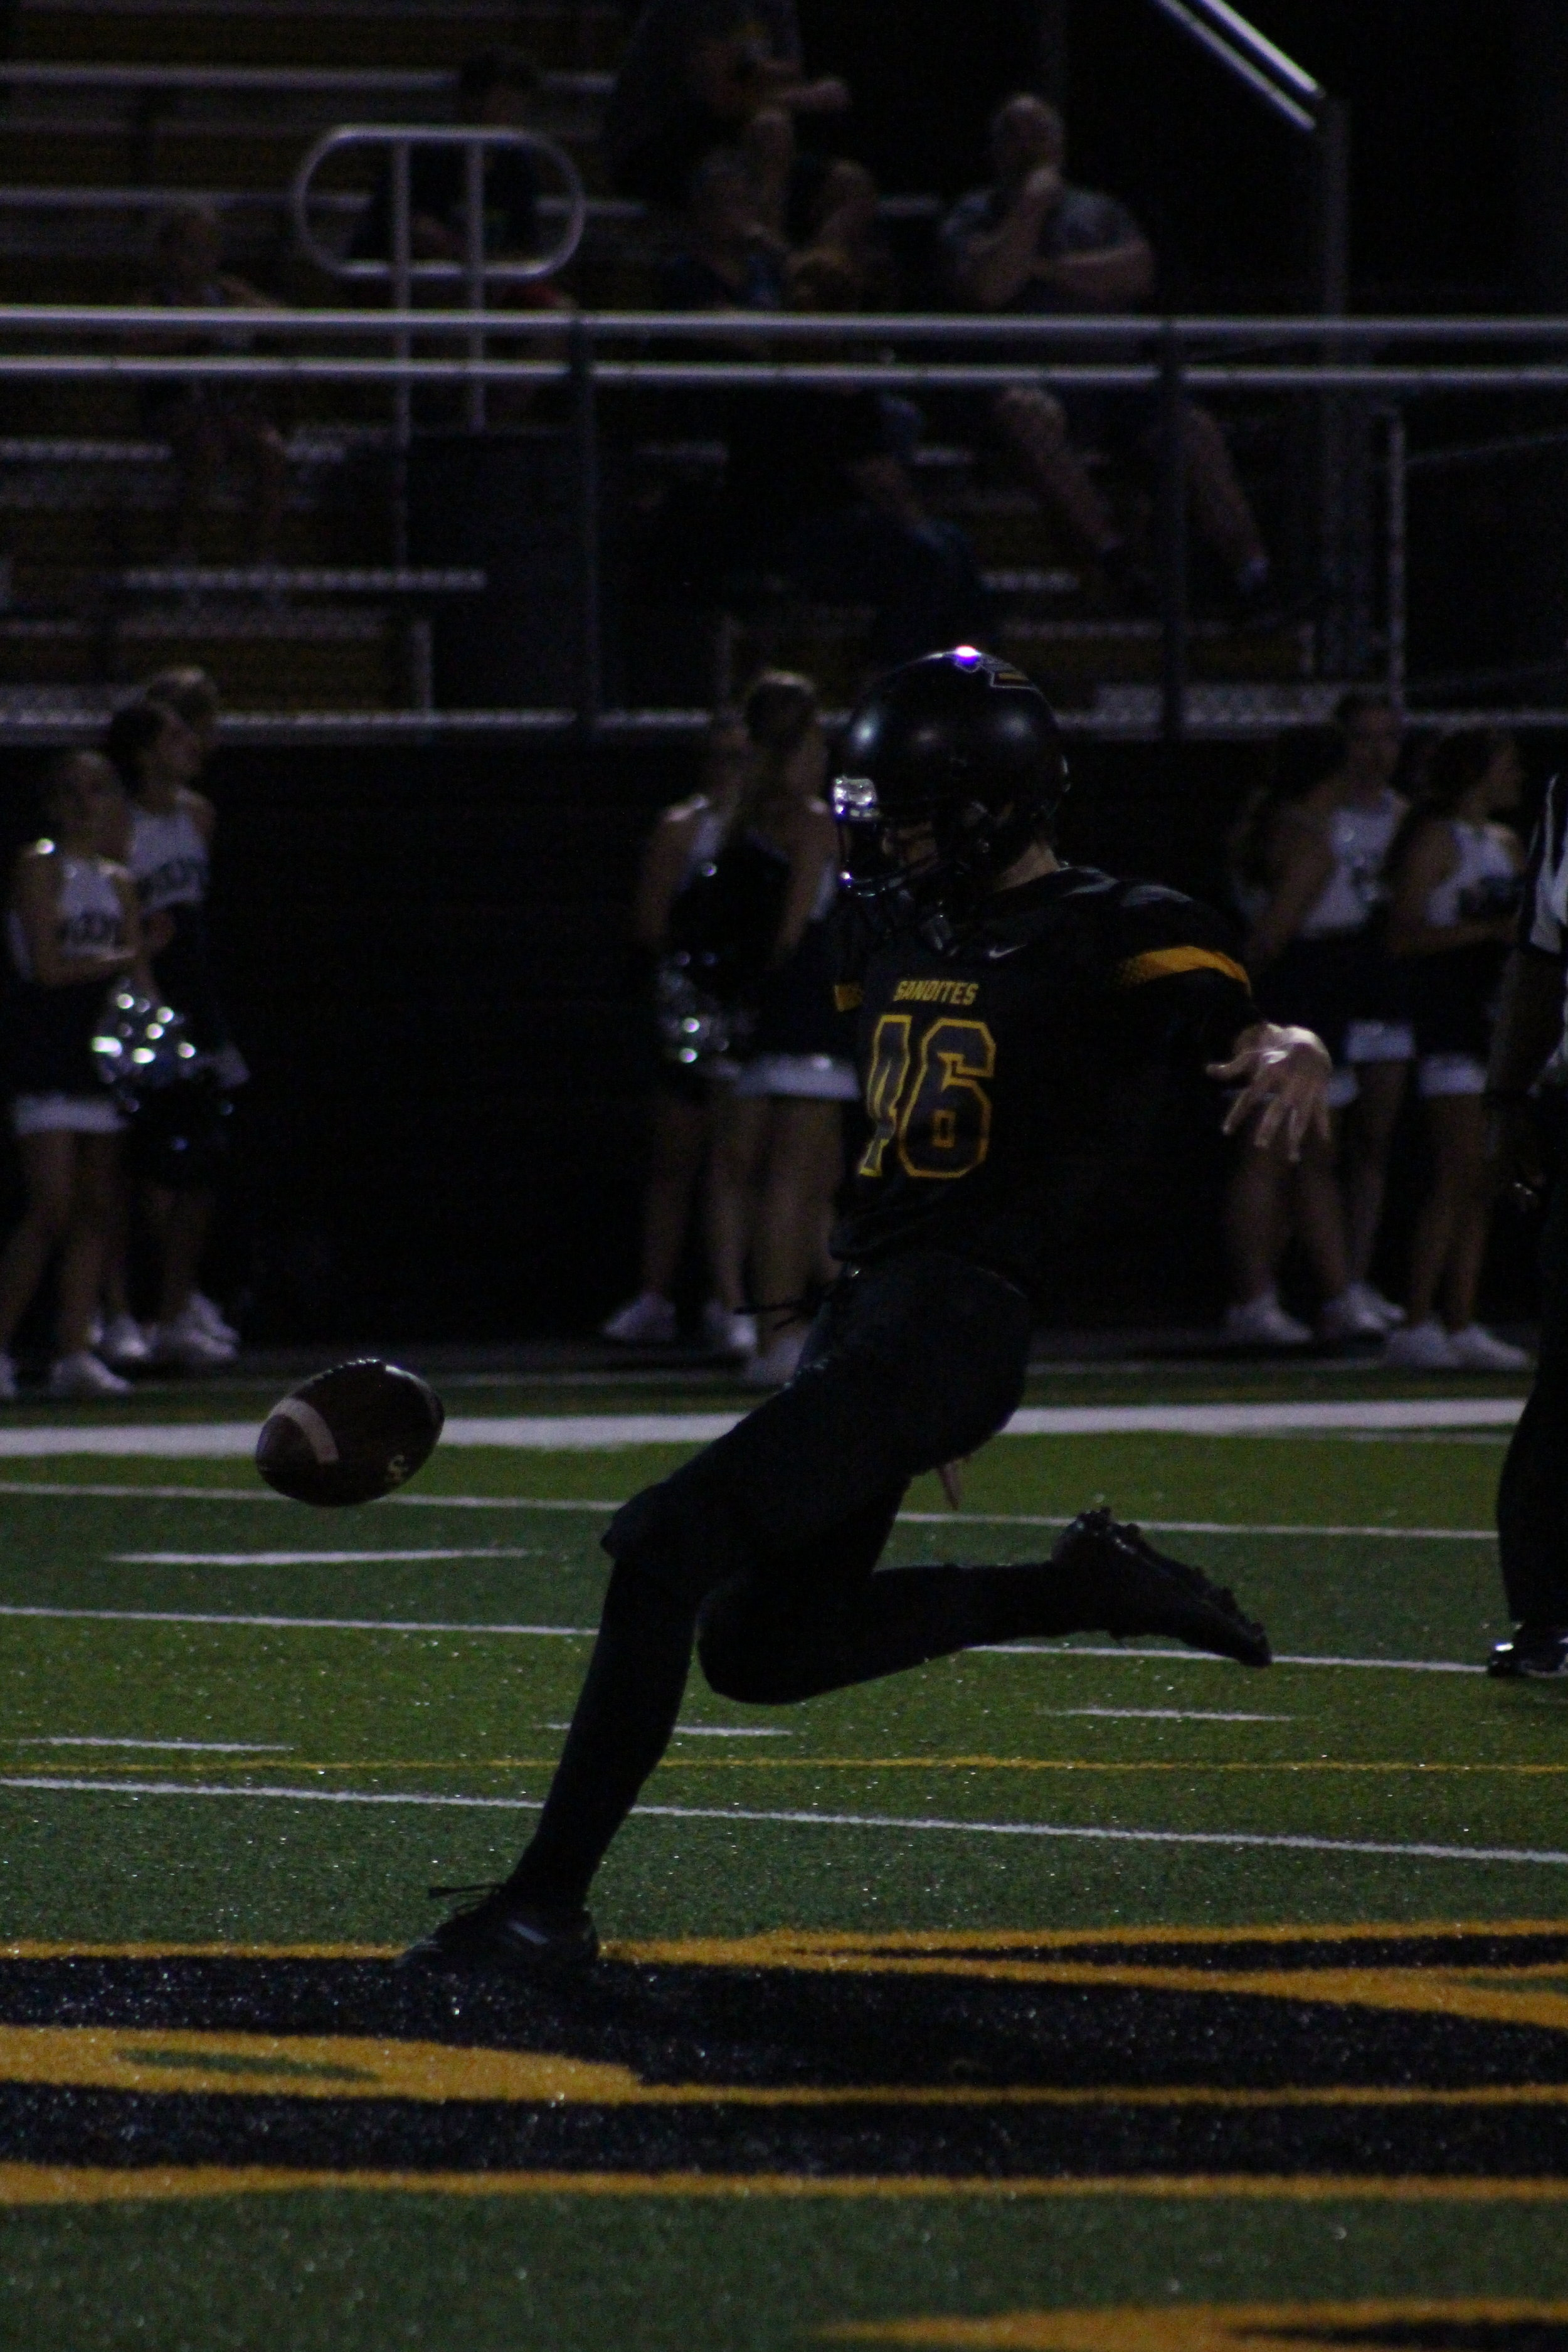 Junior kicker Zach Heinen is was 3/3 on PATs against Shawnee and is 11/11 in his debut season. He averaged 30 yards per punt and 46 yards per kick.